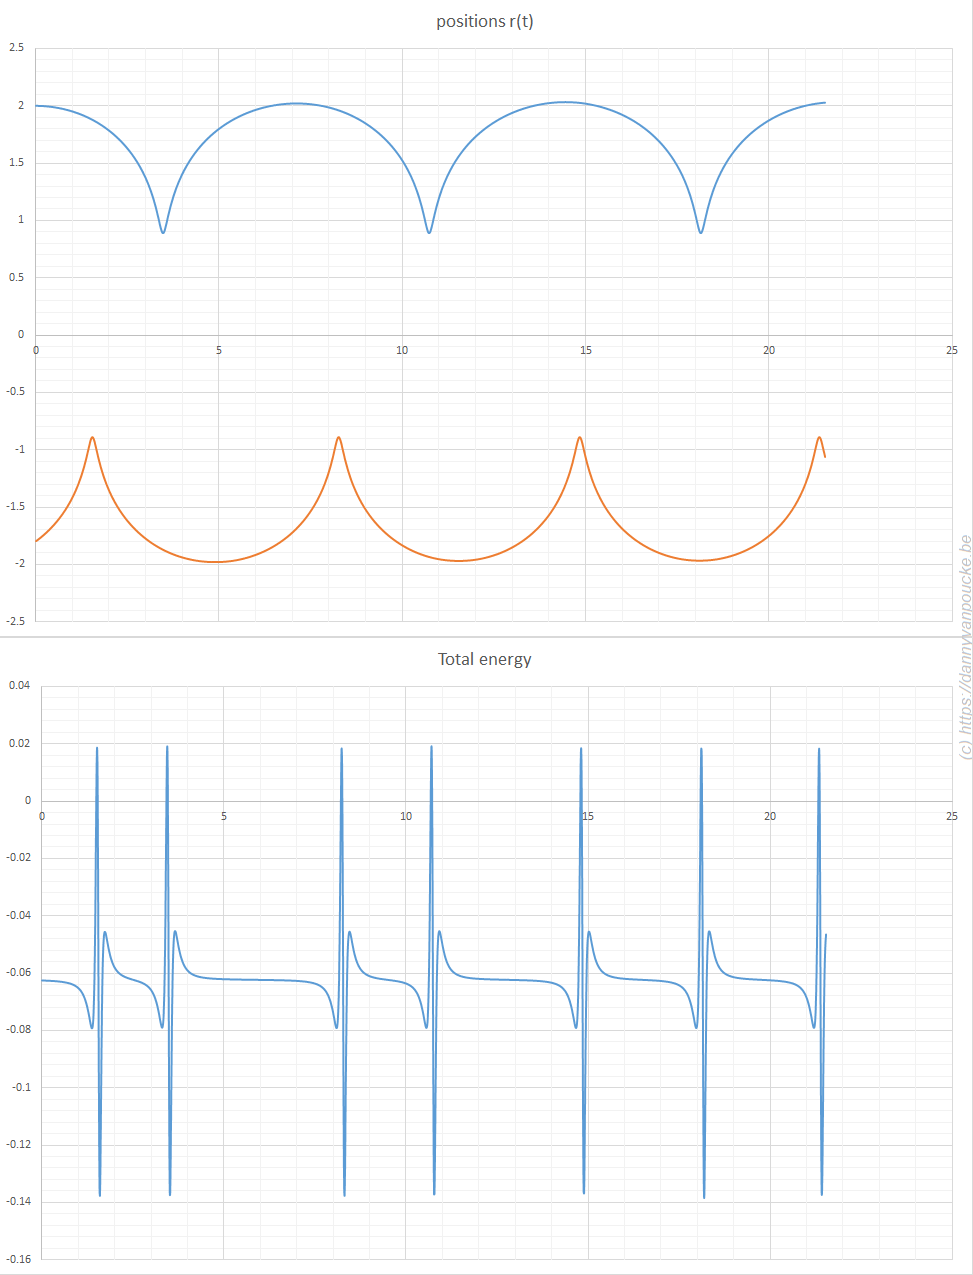 Molecular dynamics in excel. A system of three particles on a line, with one particle fixed at 0. All particles interact through a Lennard-Jones potential. The Molecular dynamics simulation shows how the particles move as time evolves. Their positions are updated using the leap-frog algorithm. The extreme hard nature of the Lennard-Jones potential gives rise to the sharp spikes in the total energy. It is this last aspect which causes the straight forward implementation of Newton's equations of motion to fail.